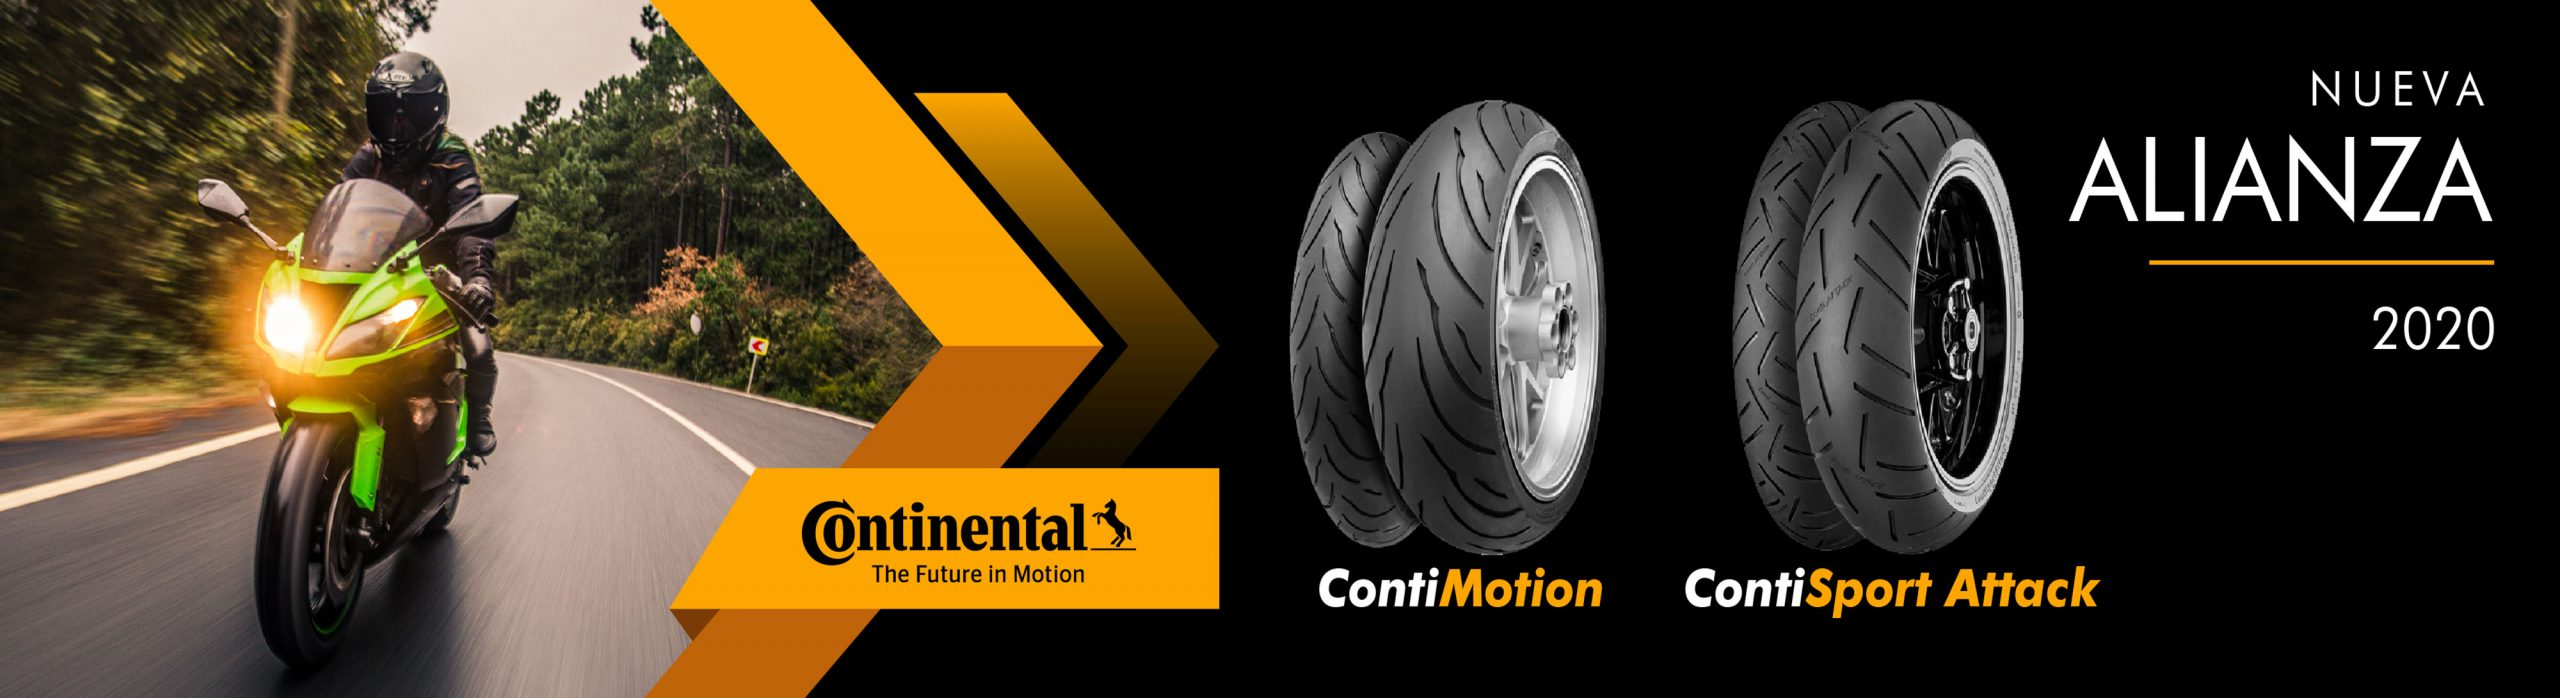 Banner-Web-Continental-scaled